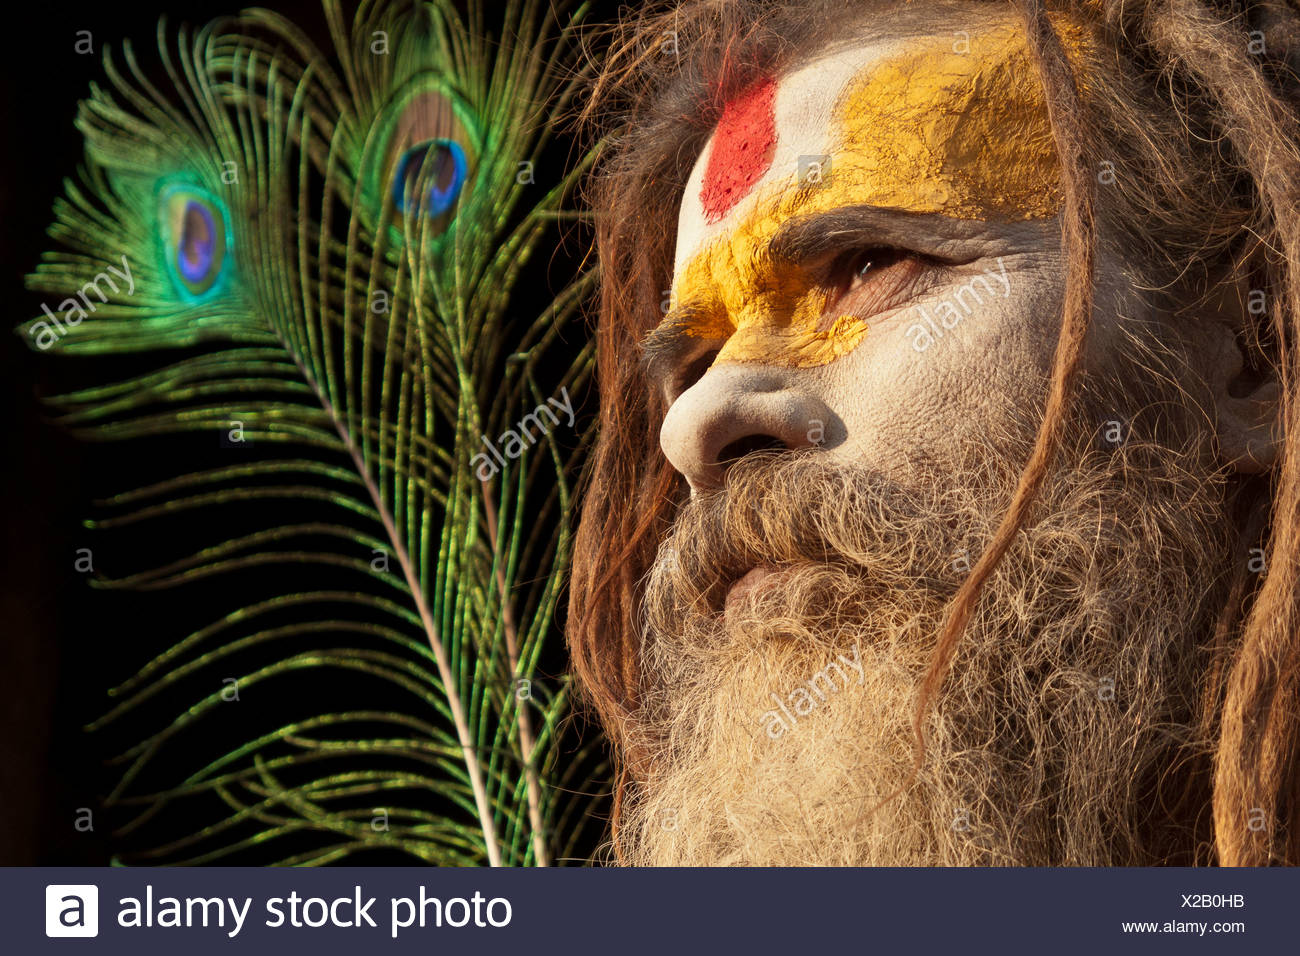 A Rama devoted Sadhu, at Pashupatinath temple in Kathmandu, Nepal, South Asia - Stock Image